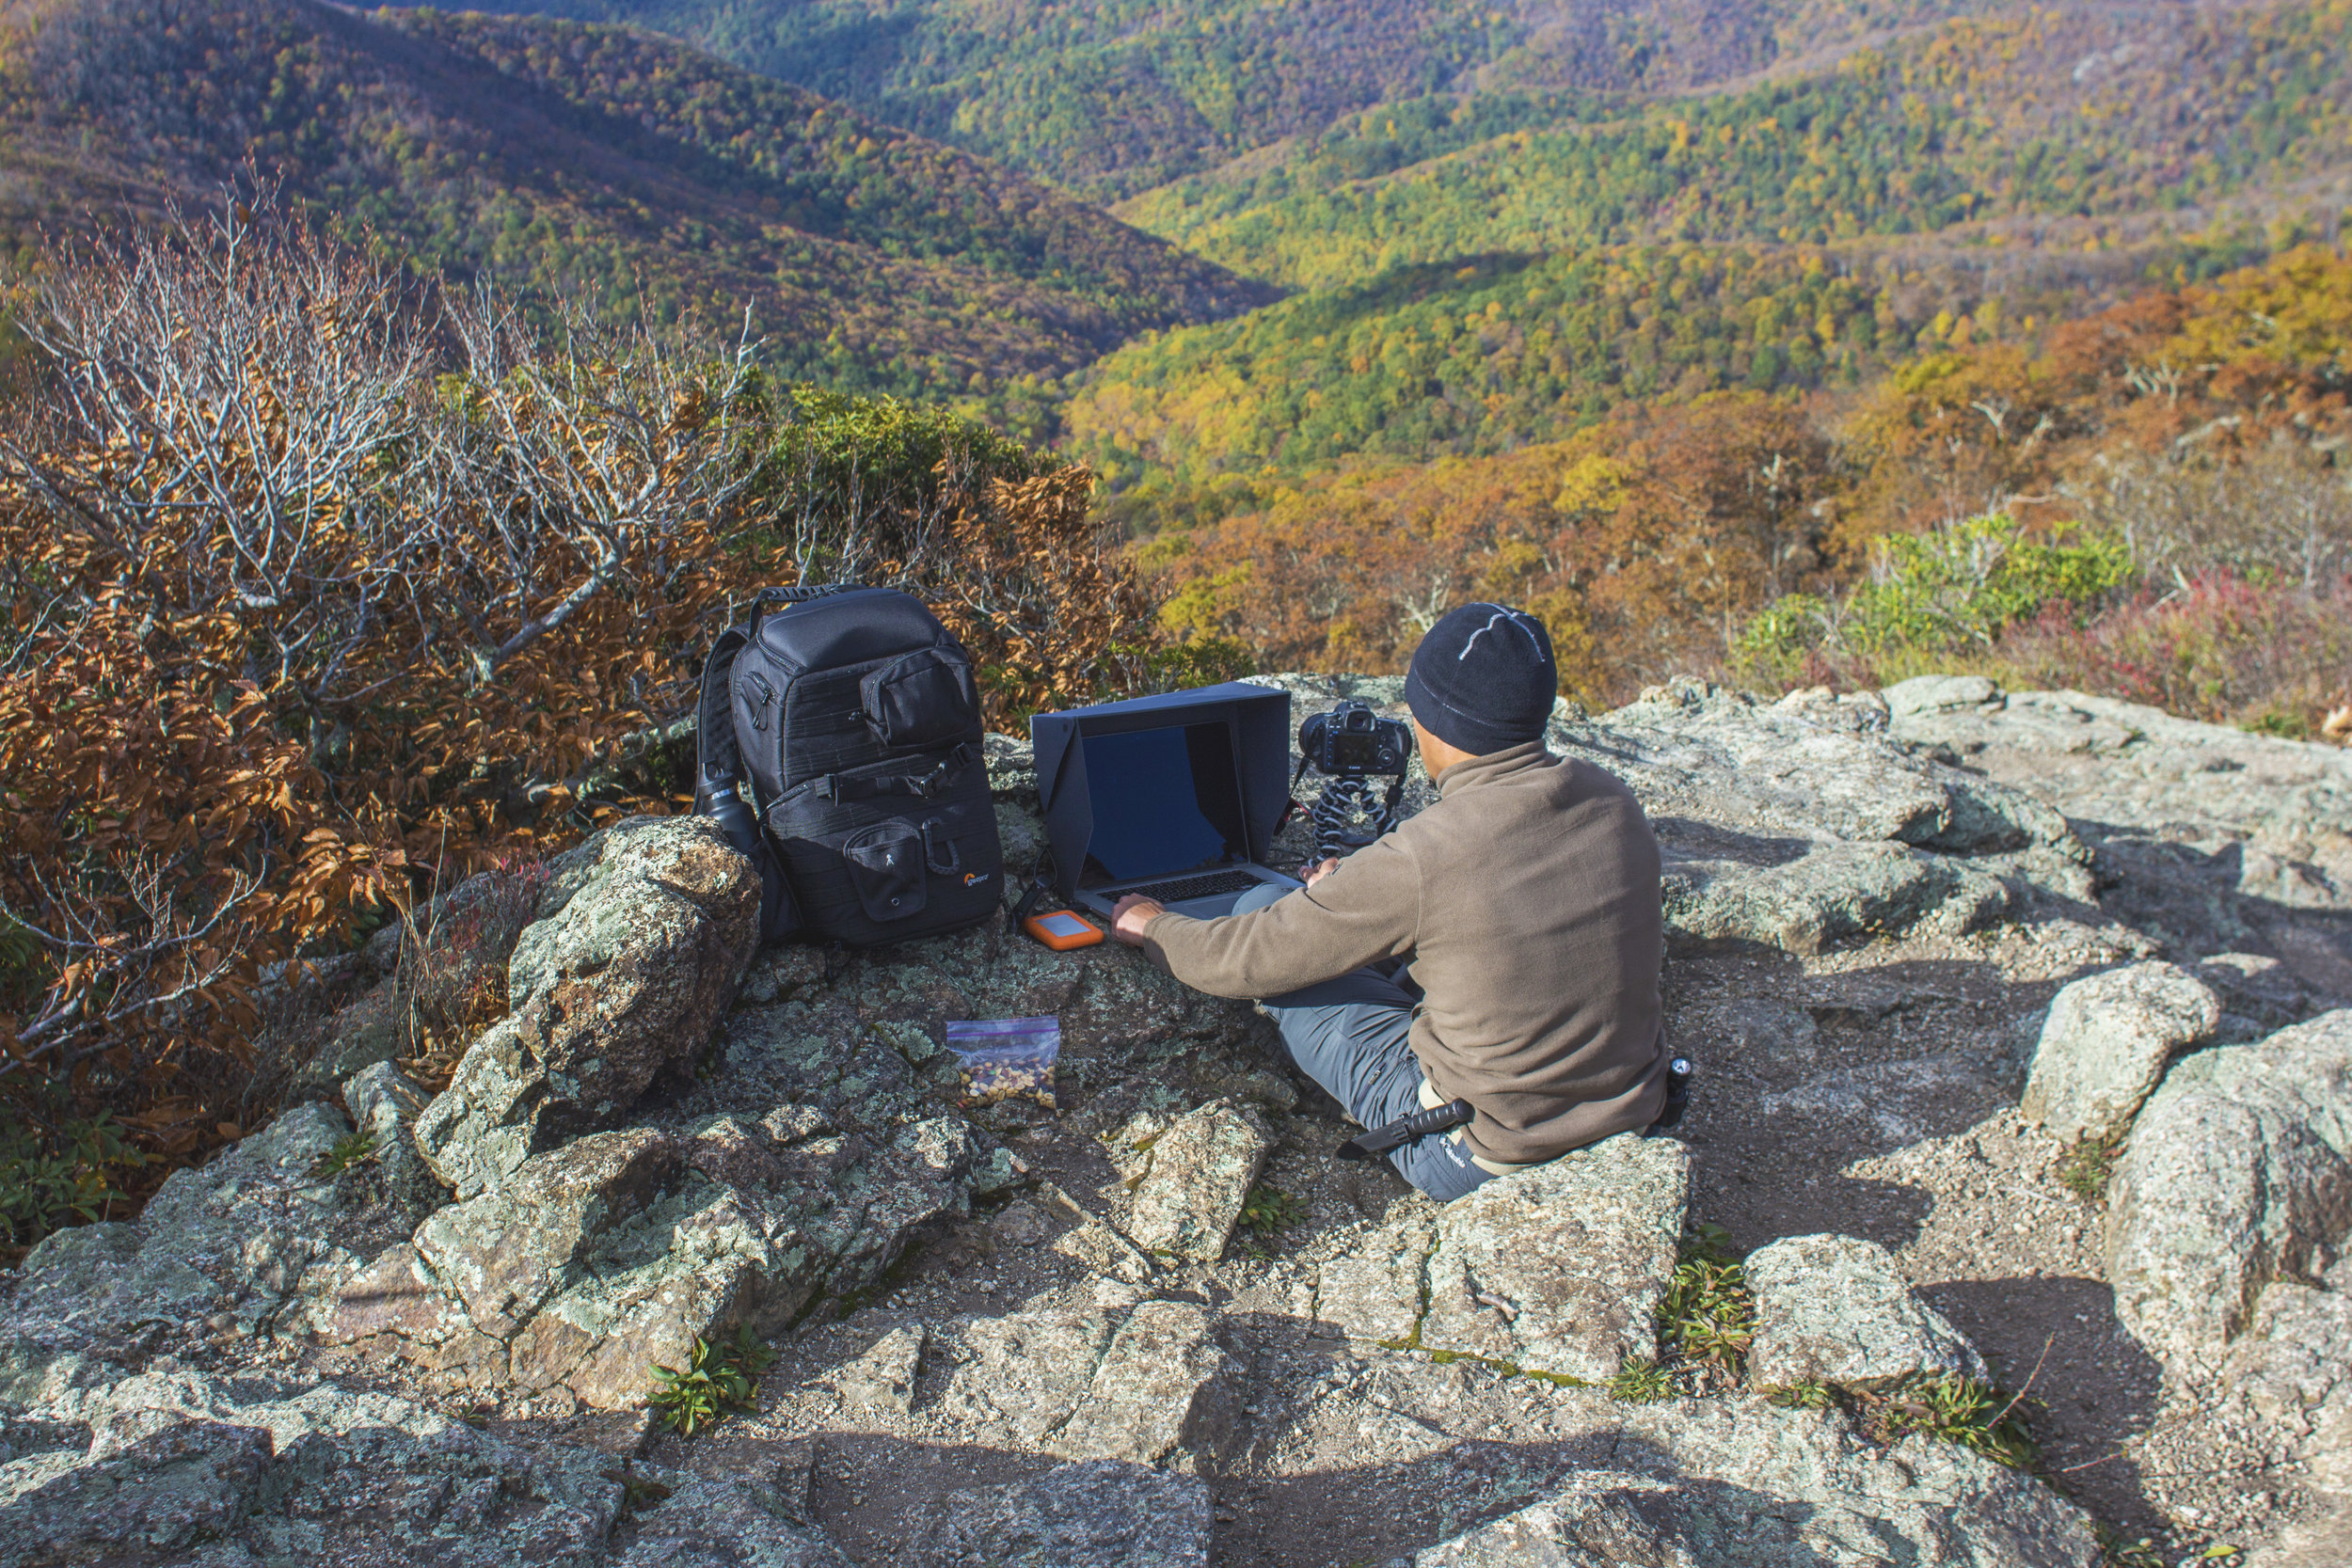 me working Mt Pleasant. Rated Top 10 Fall views by Travel & Leisure Magazine 2014